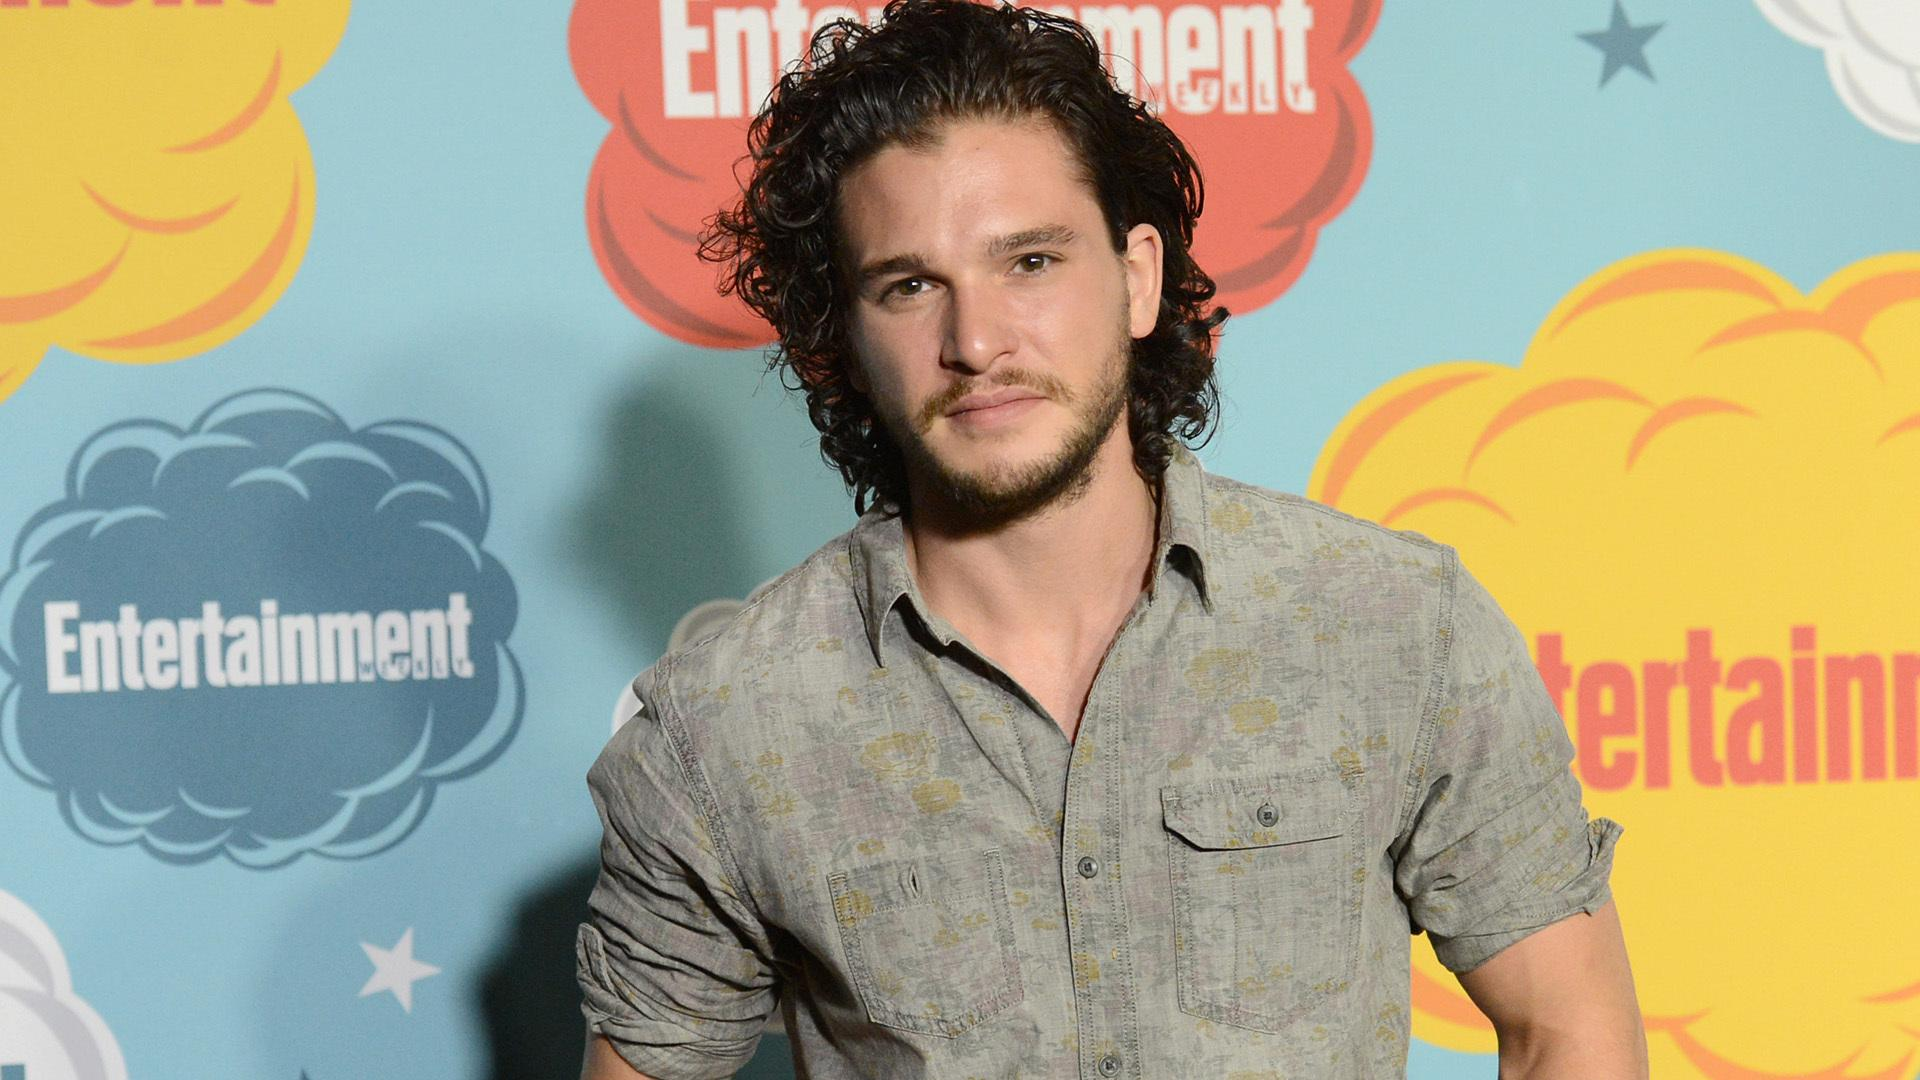 Kit Harrington Auditioned for GOT with a Black Eye